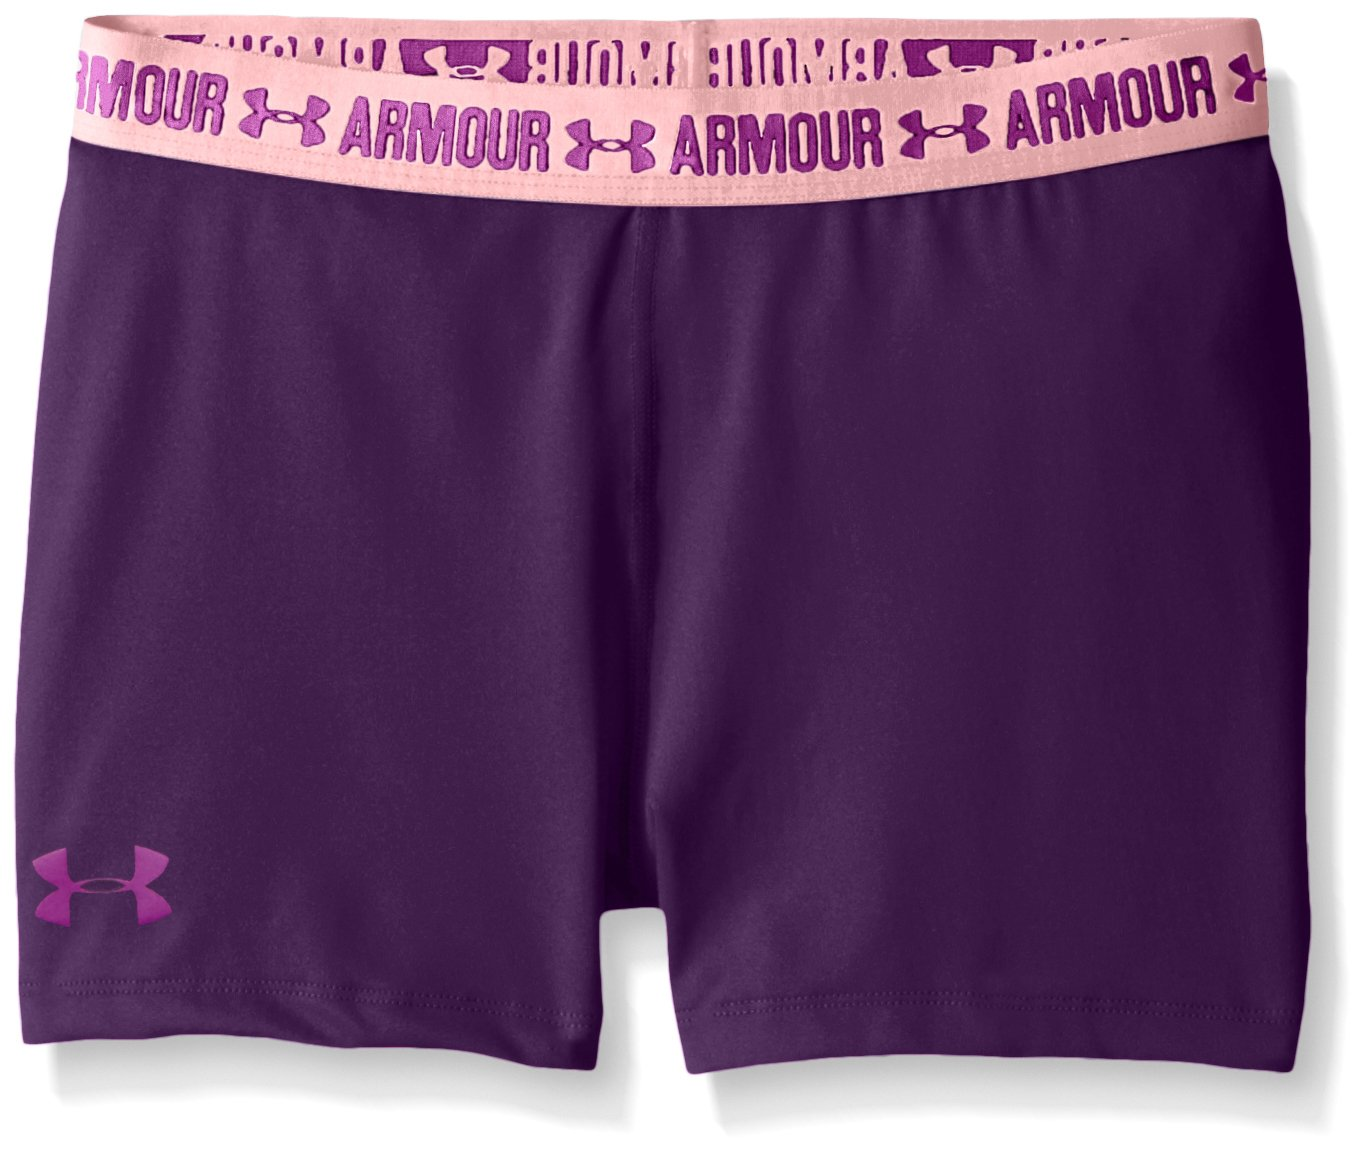 Under Armour Girls' HeatGear Armour 3 Shorty Under Armour Apparel 1271025